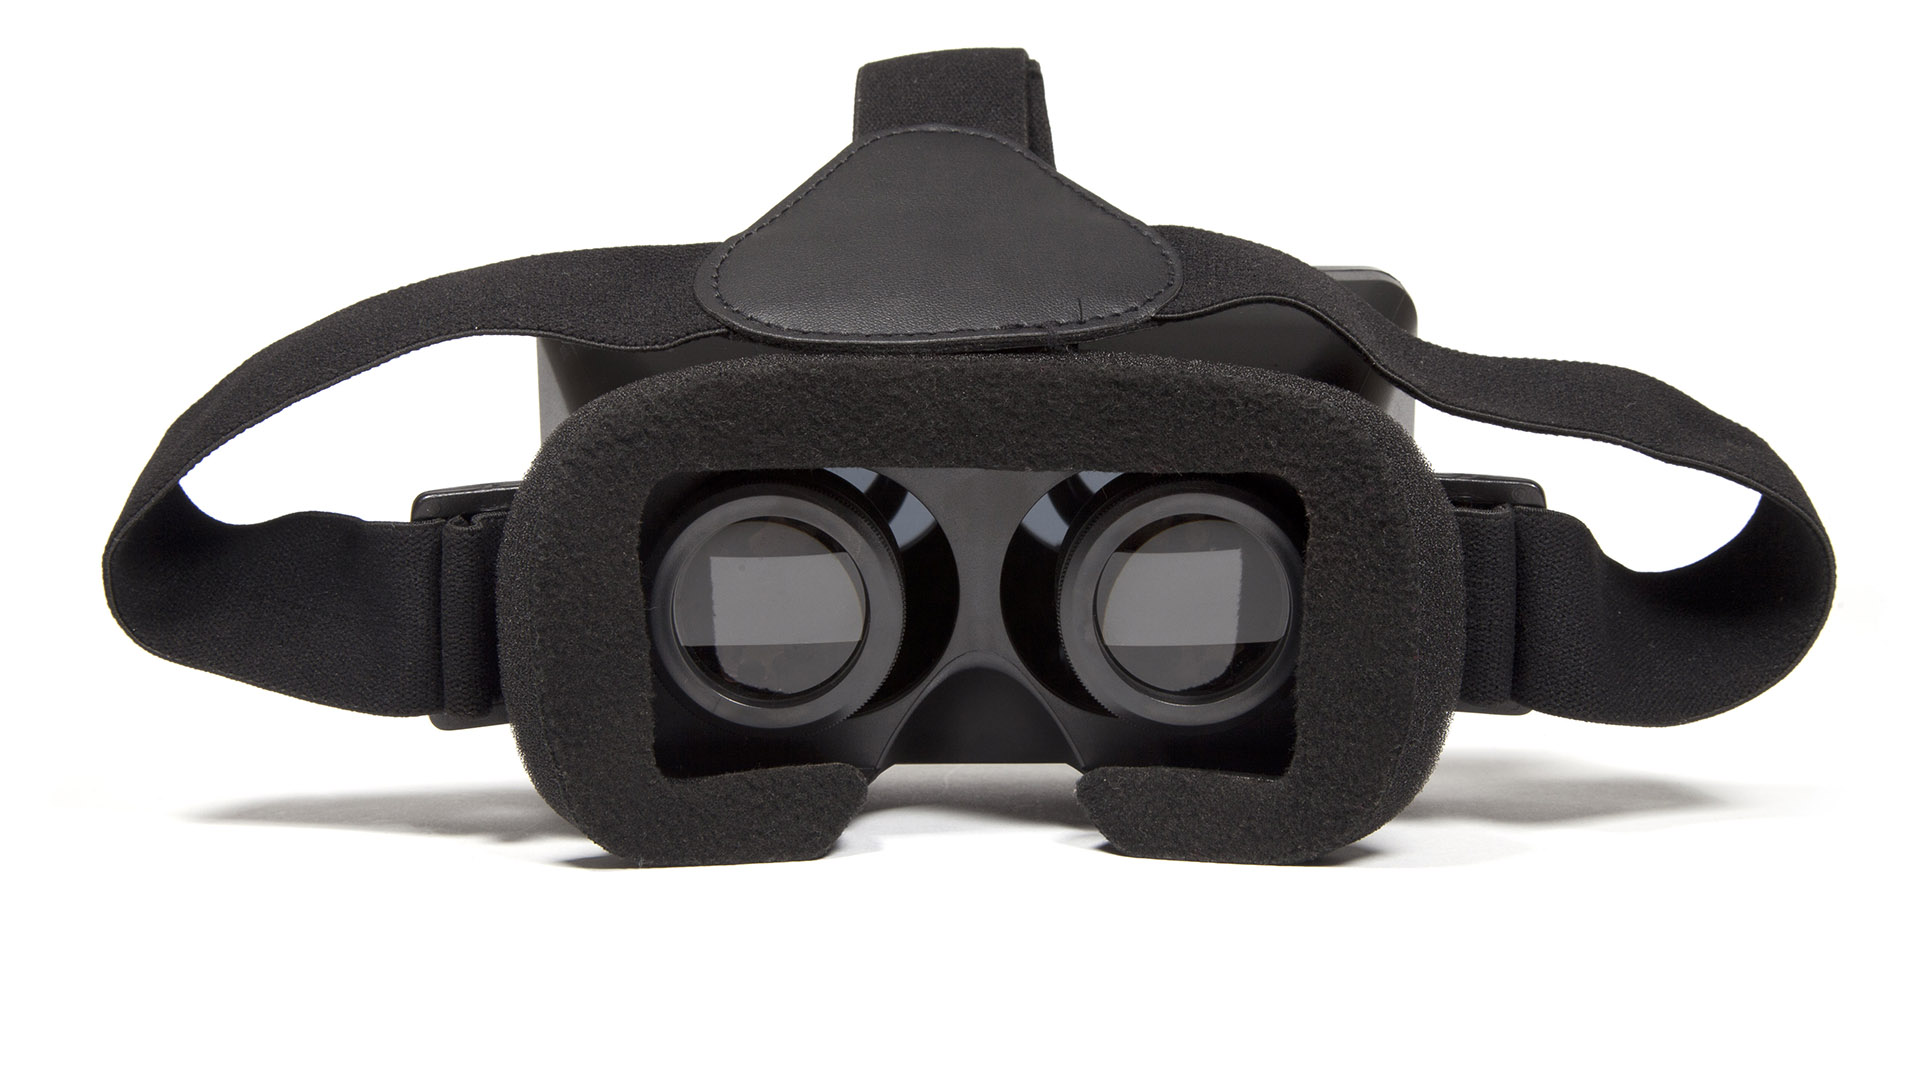 f3126e96c2a7 New Immerse Virtual Reality Headset Debuts for only  45